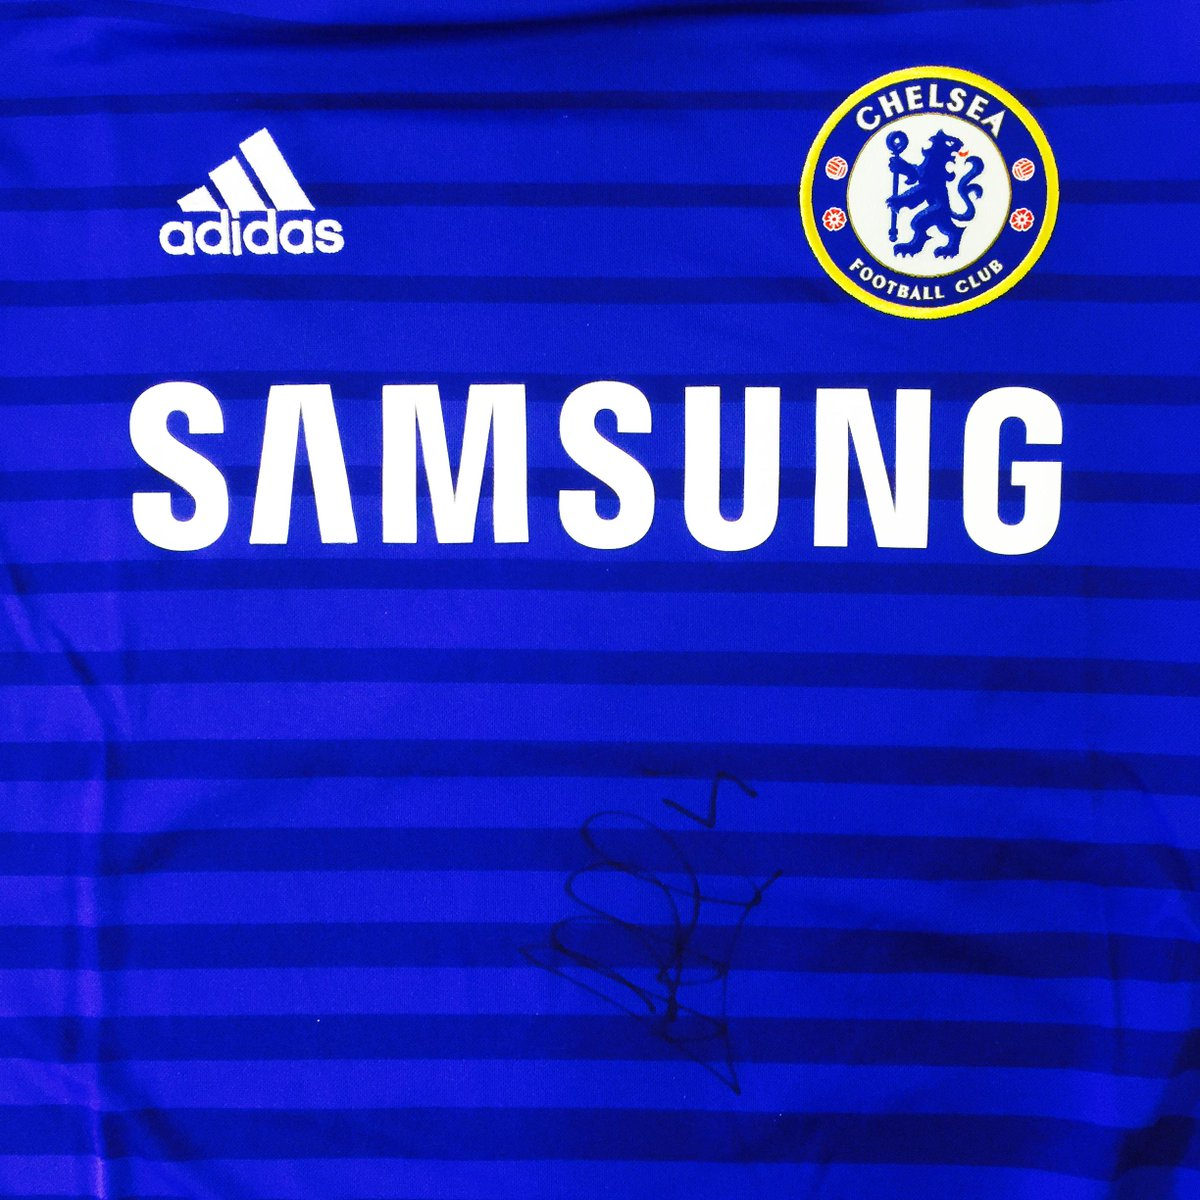 Win a @ChelseaFC home shirt signed by @cesc4official Follow us and RT to enter. http://t.co/nz5GPWwKZ2